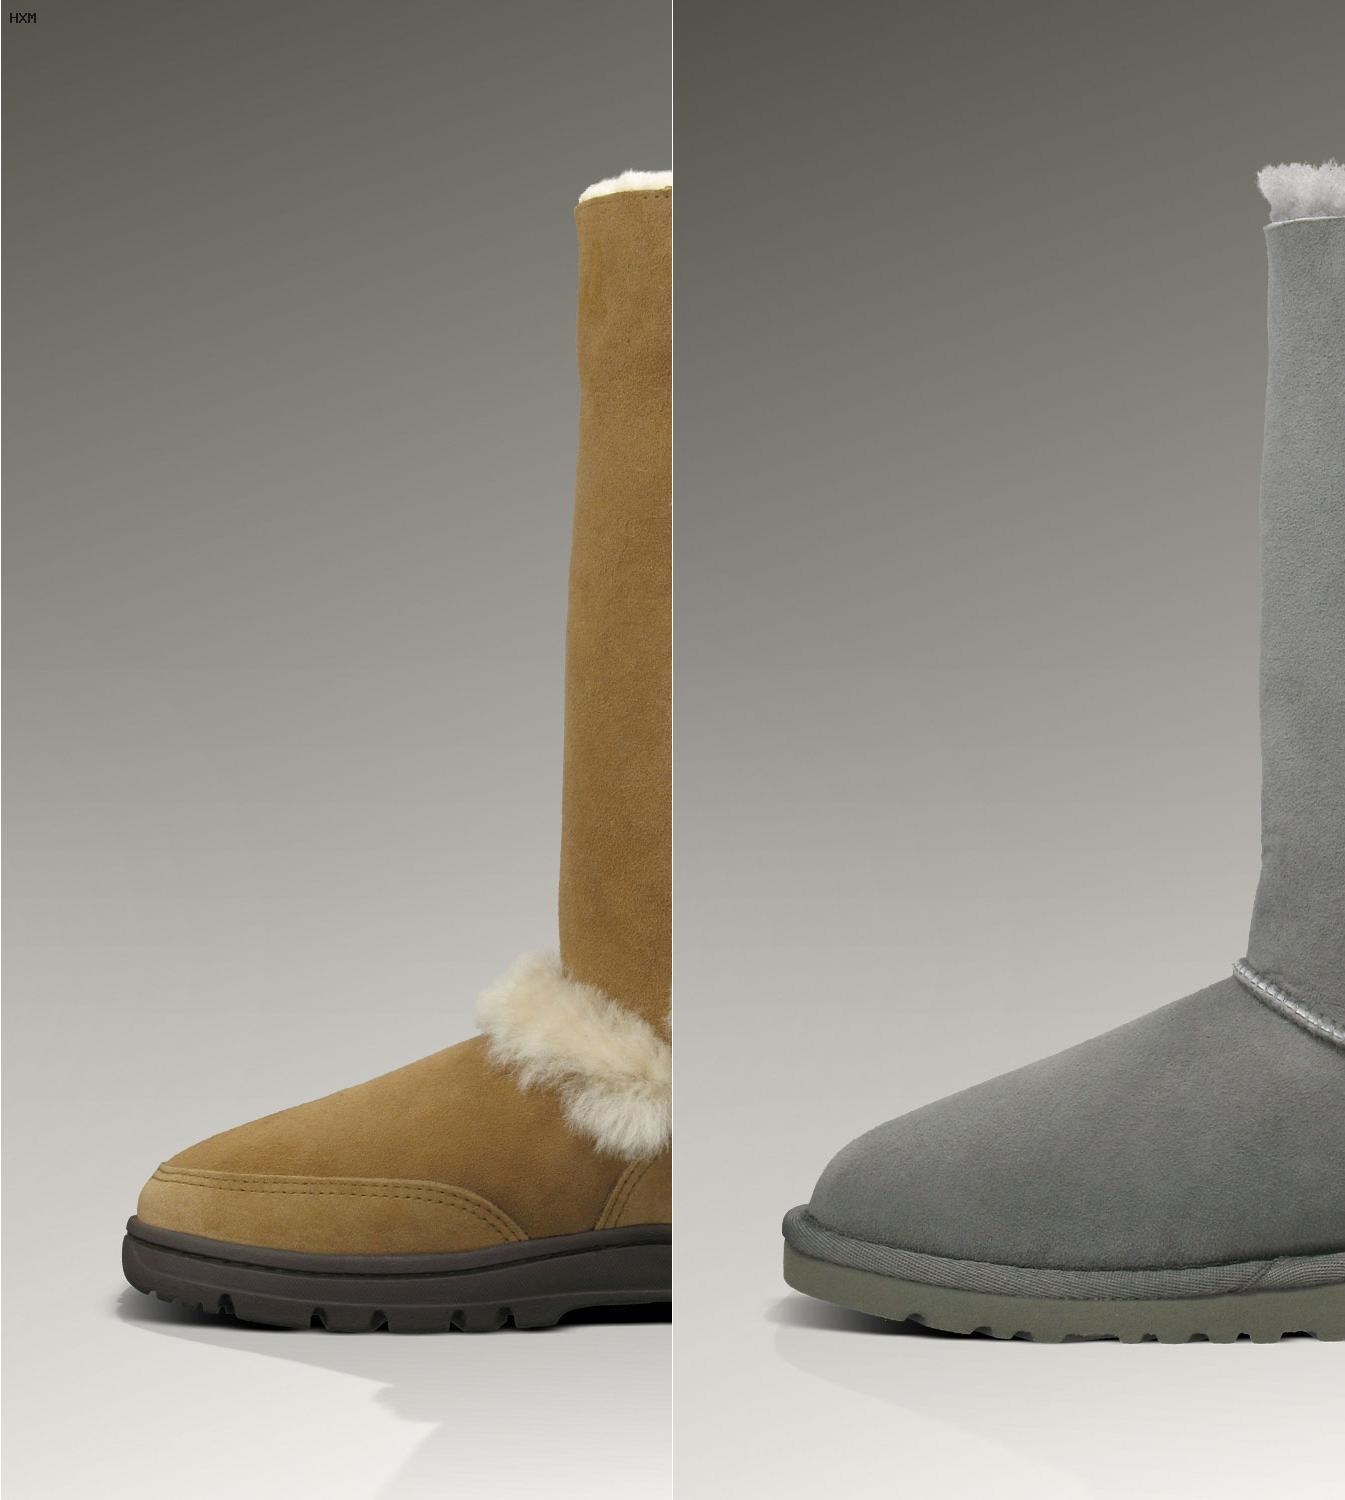 mou uggs